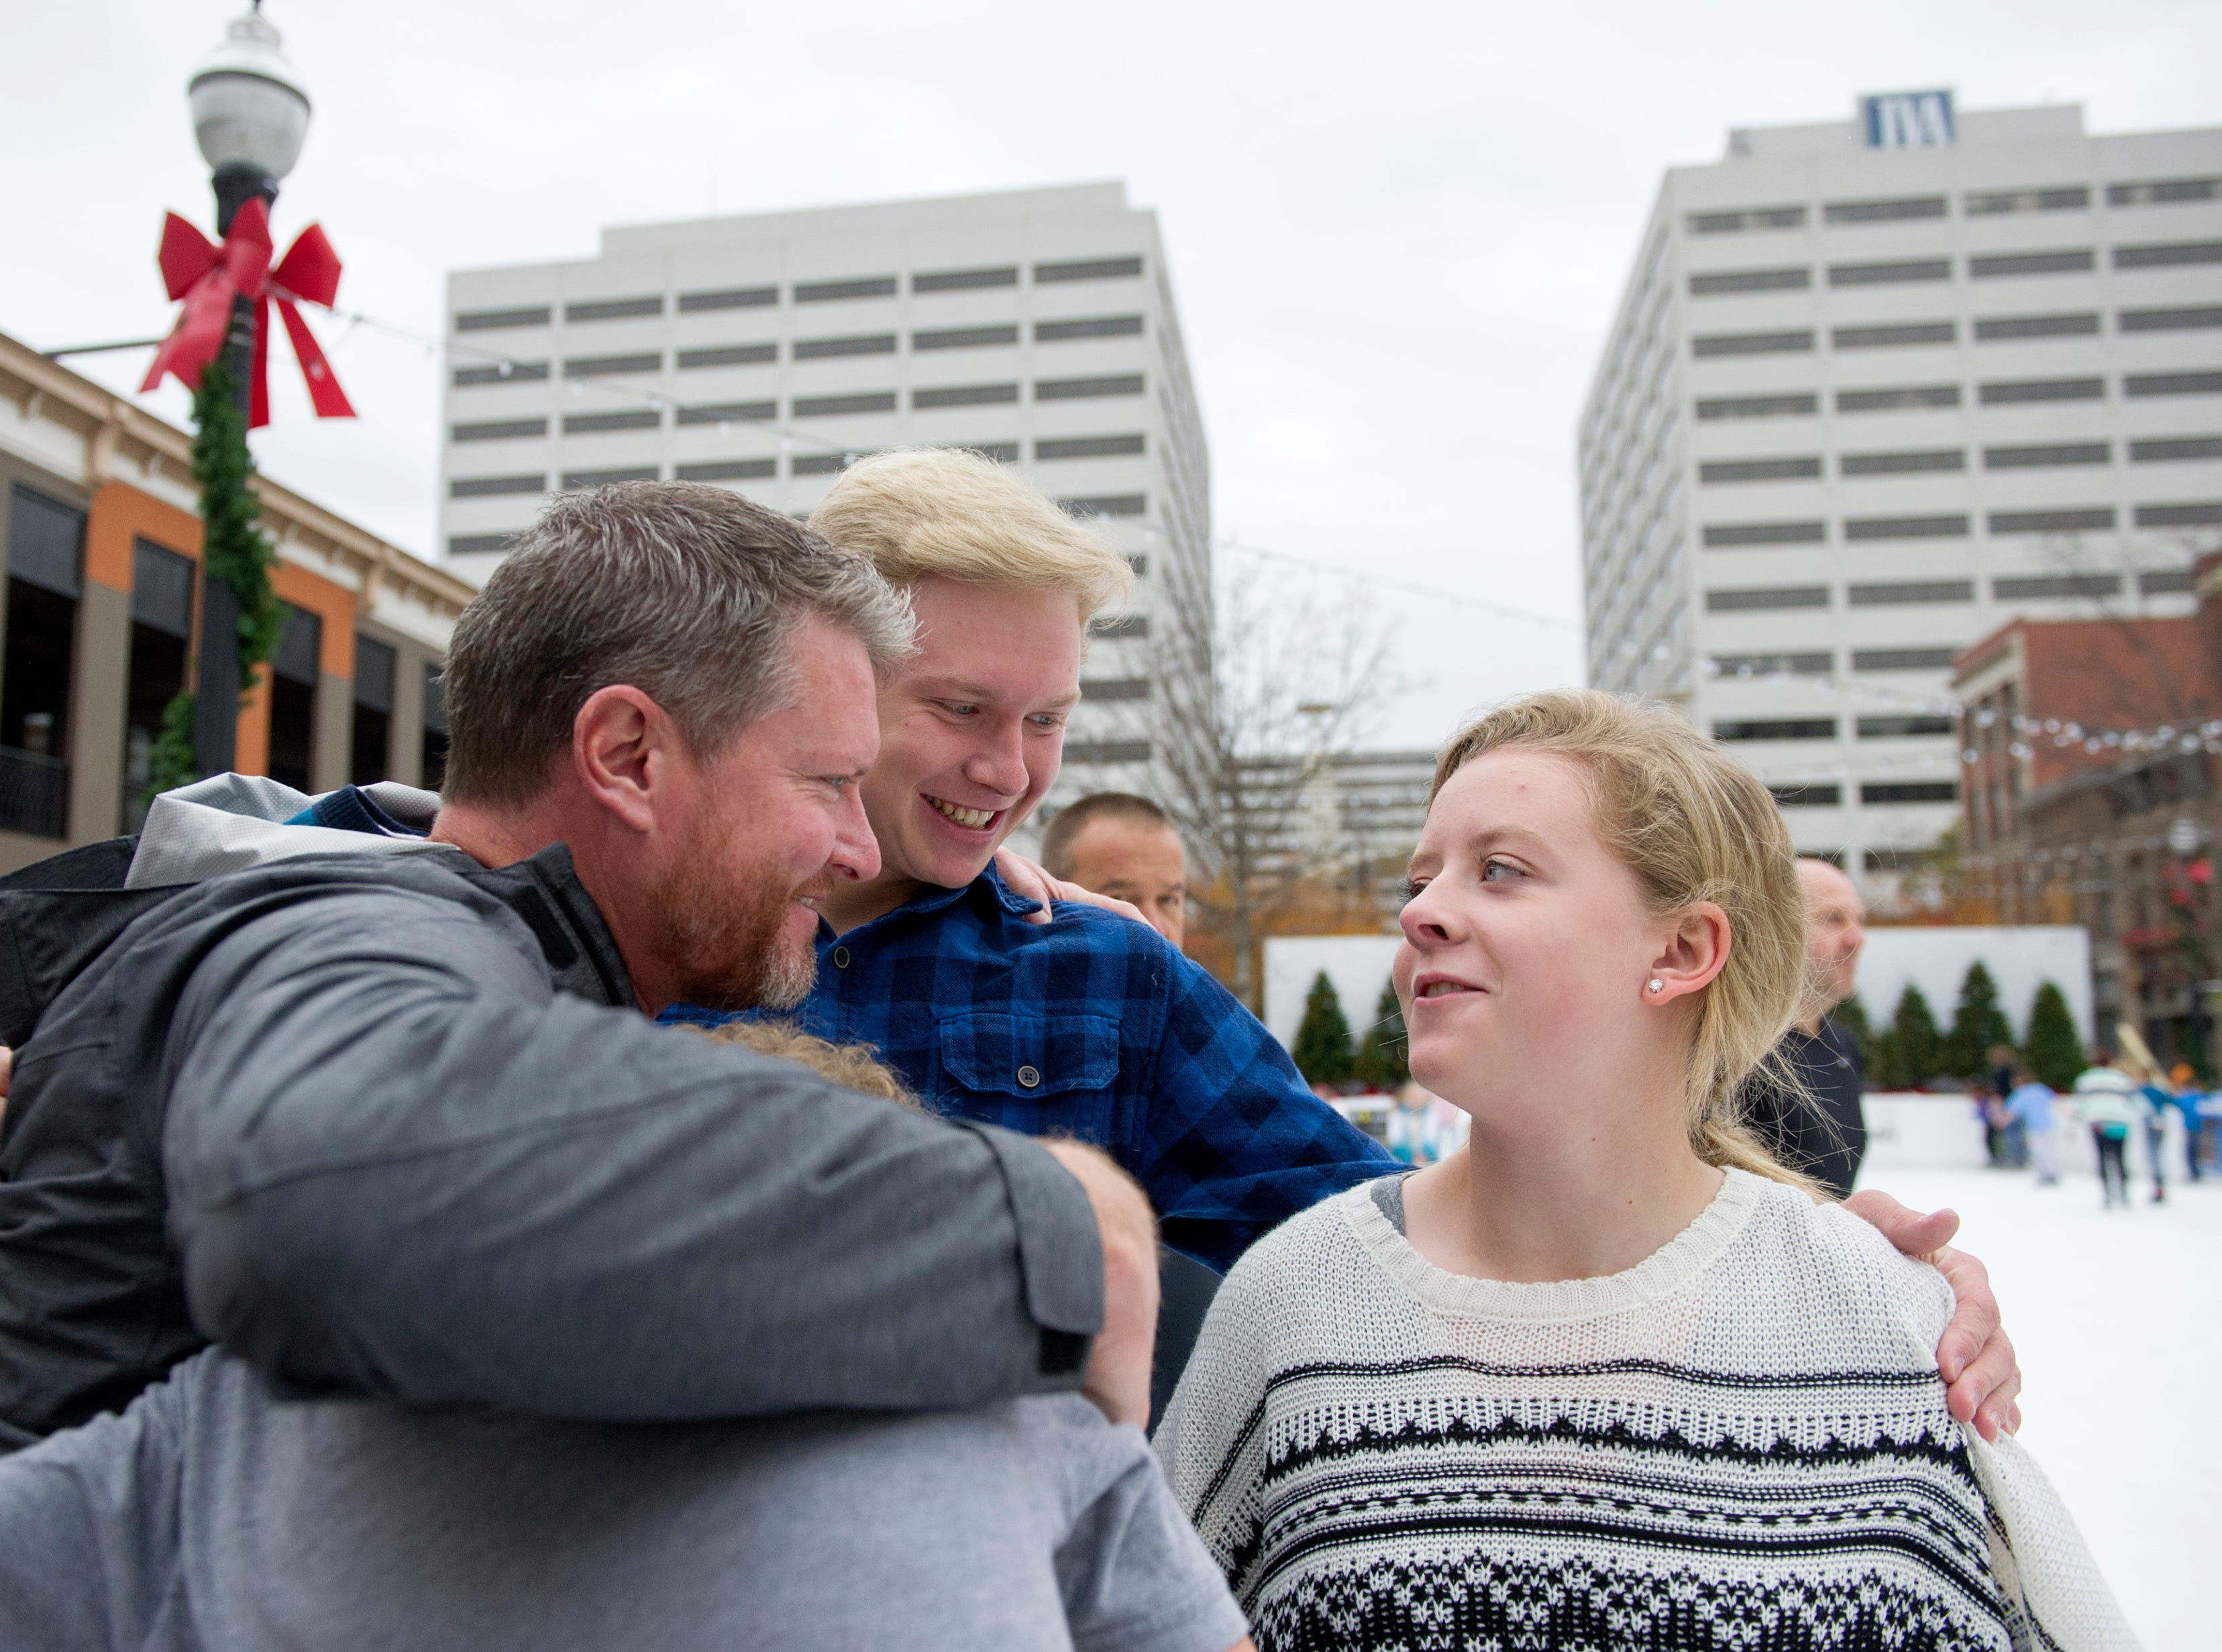 Eric Rice (left) pulls his kids Jake Rice, Emma Rice (right) and Charlie Rice all of Knoxville in for a hug during opening weekend for the Market Square ice skating rink Saturday, Nov. 28, 2015.